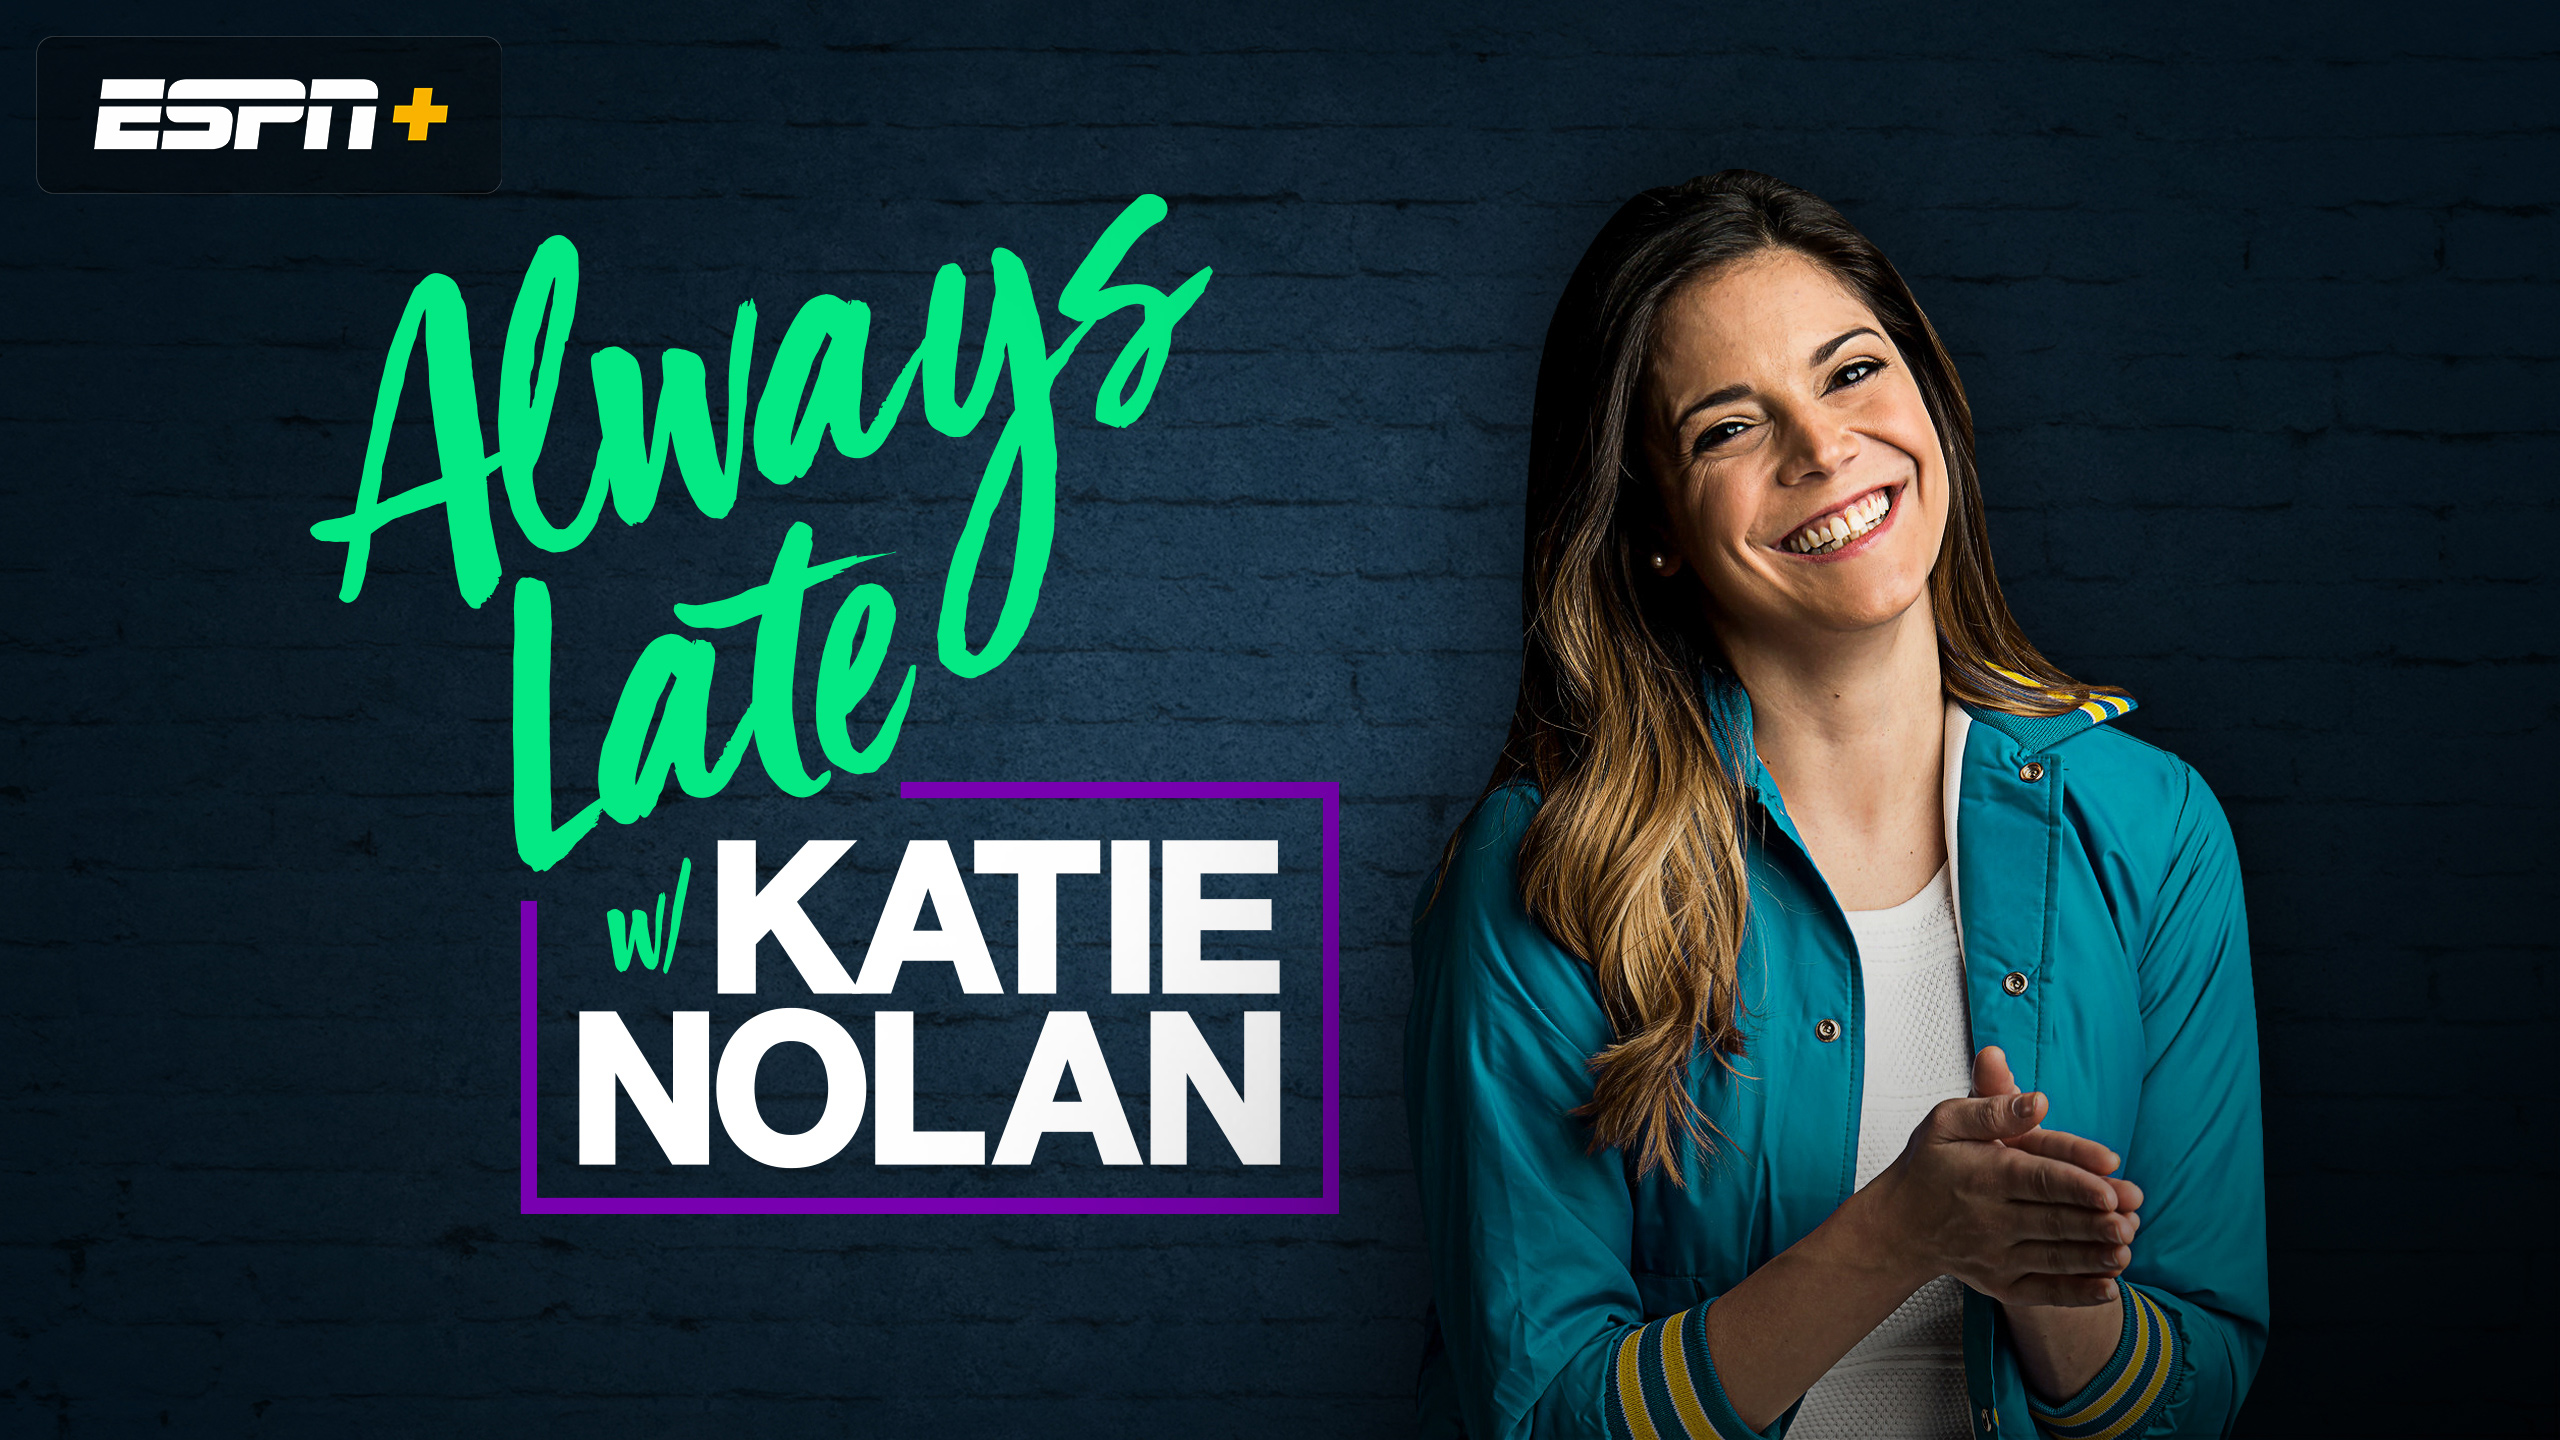 5ceecbd0eff6 Always Late with Katie Nolan is a late-night sports comedy show covering the  big (and small) stories of the week. Watch on ESPN+